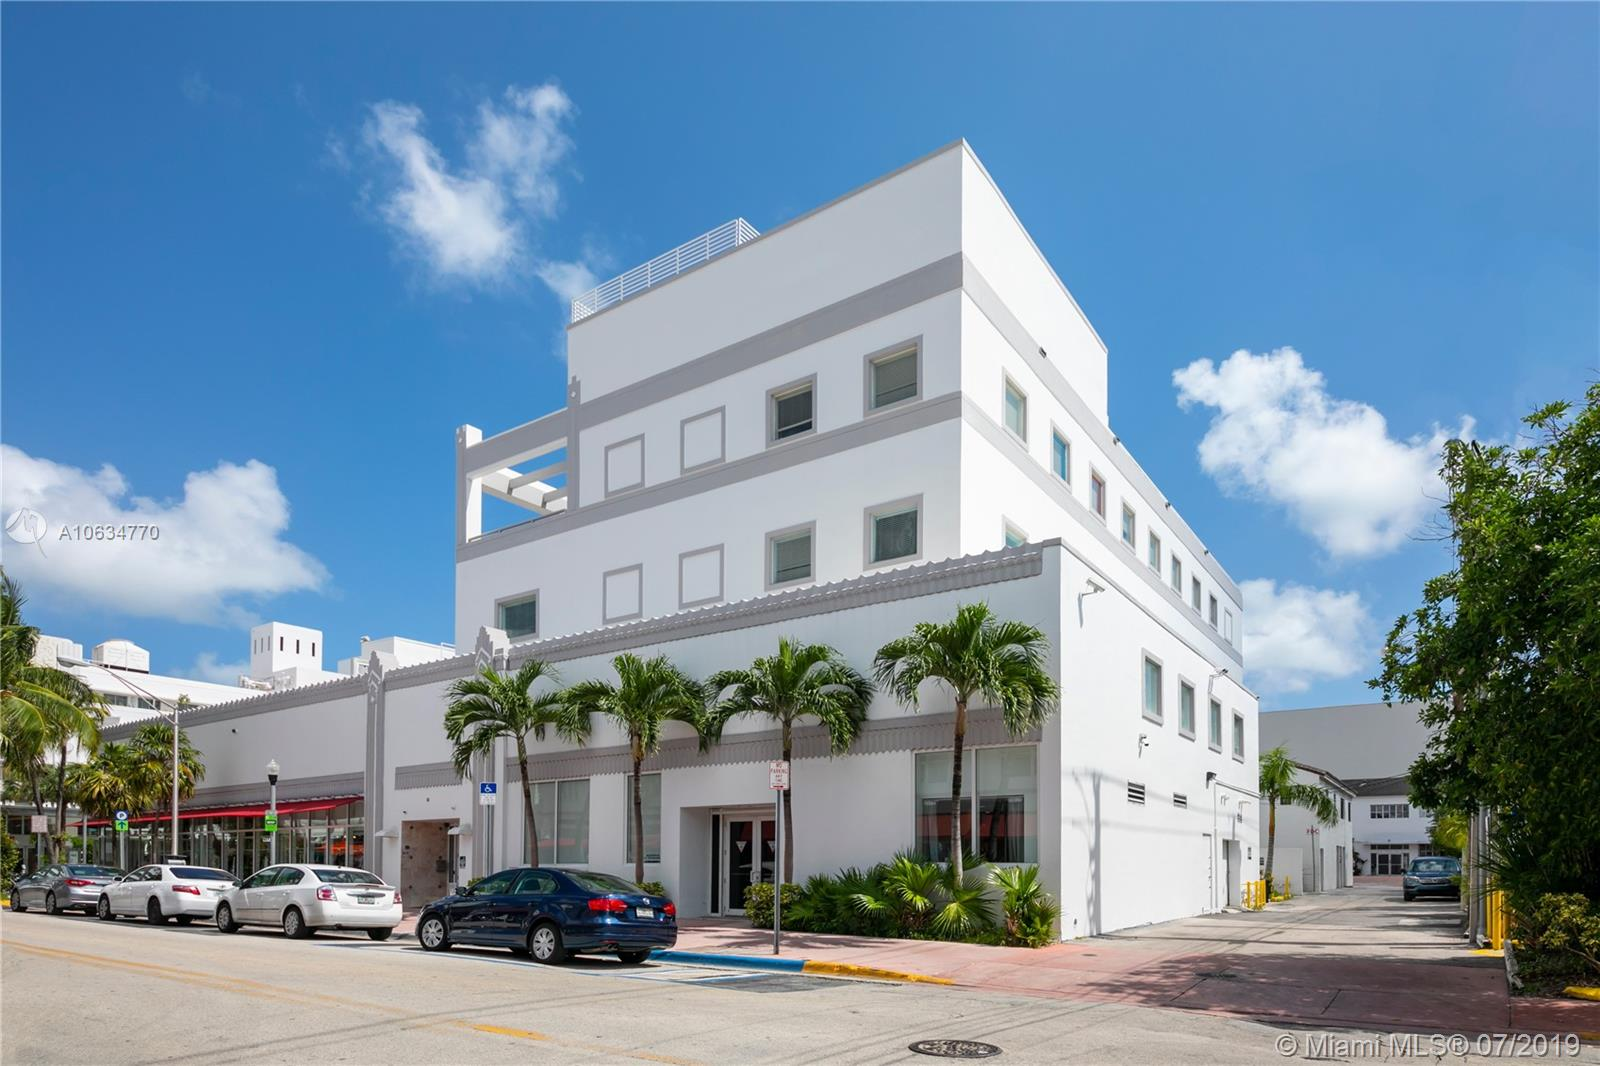 560 Lincoln Rd SUITE 300, Miami Beach, Florida 33139, ,Commercial Sale,For Sale,560 Lincoln Rd SUITE 300,A10634770